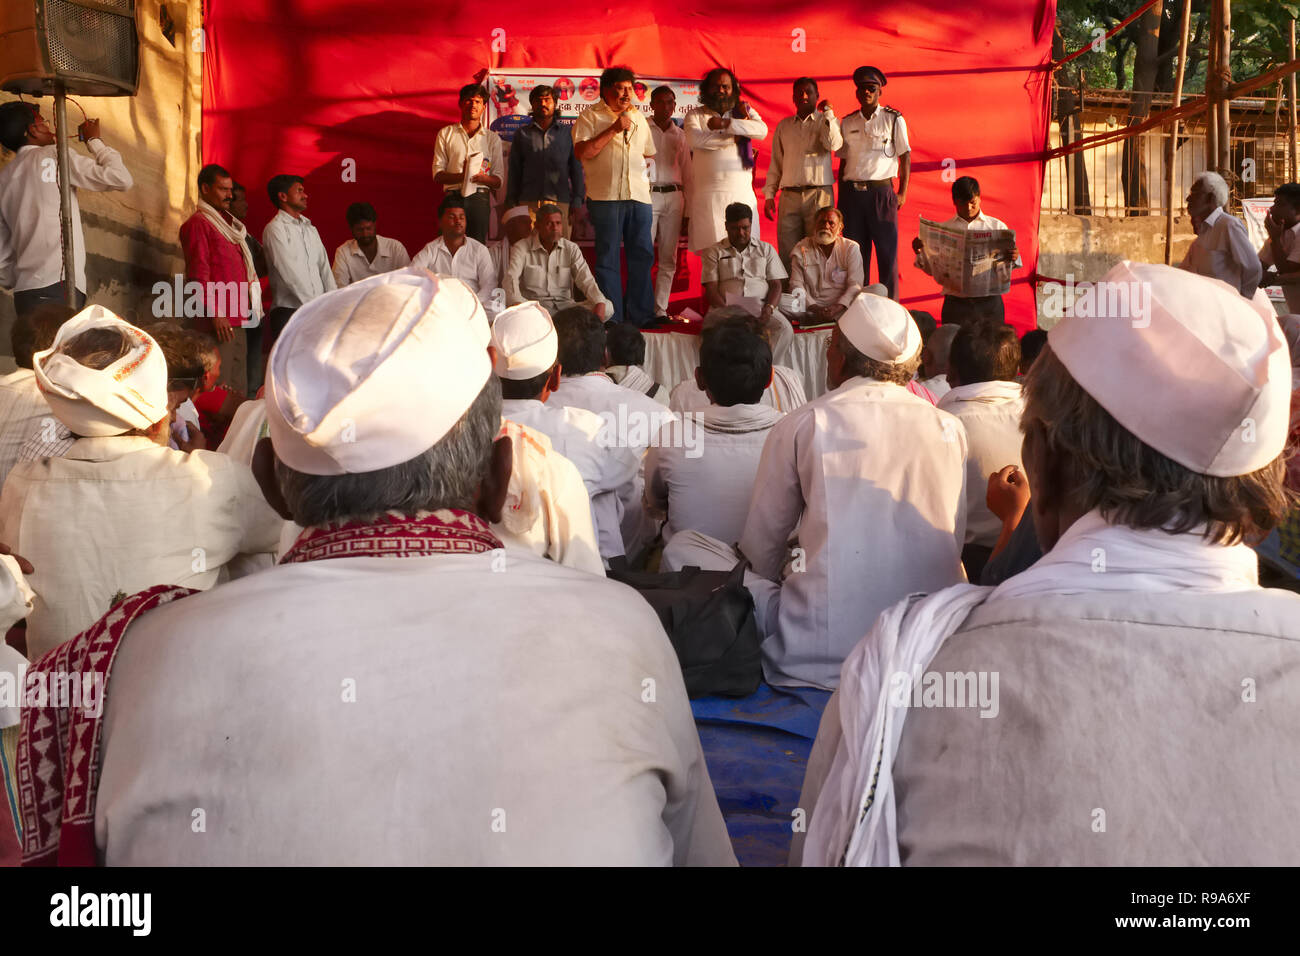 Impoverished farmers from Maharashtra state attending a political rally at Azad Maidan, Mumbai, India, a popular rallying point in the city - Stock Image